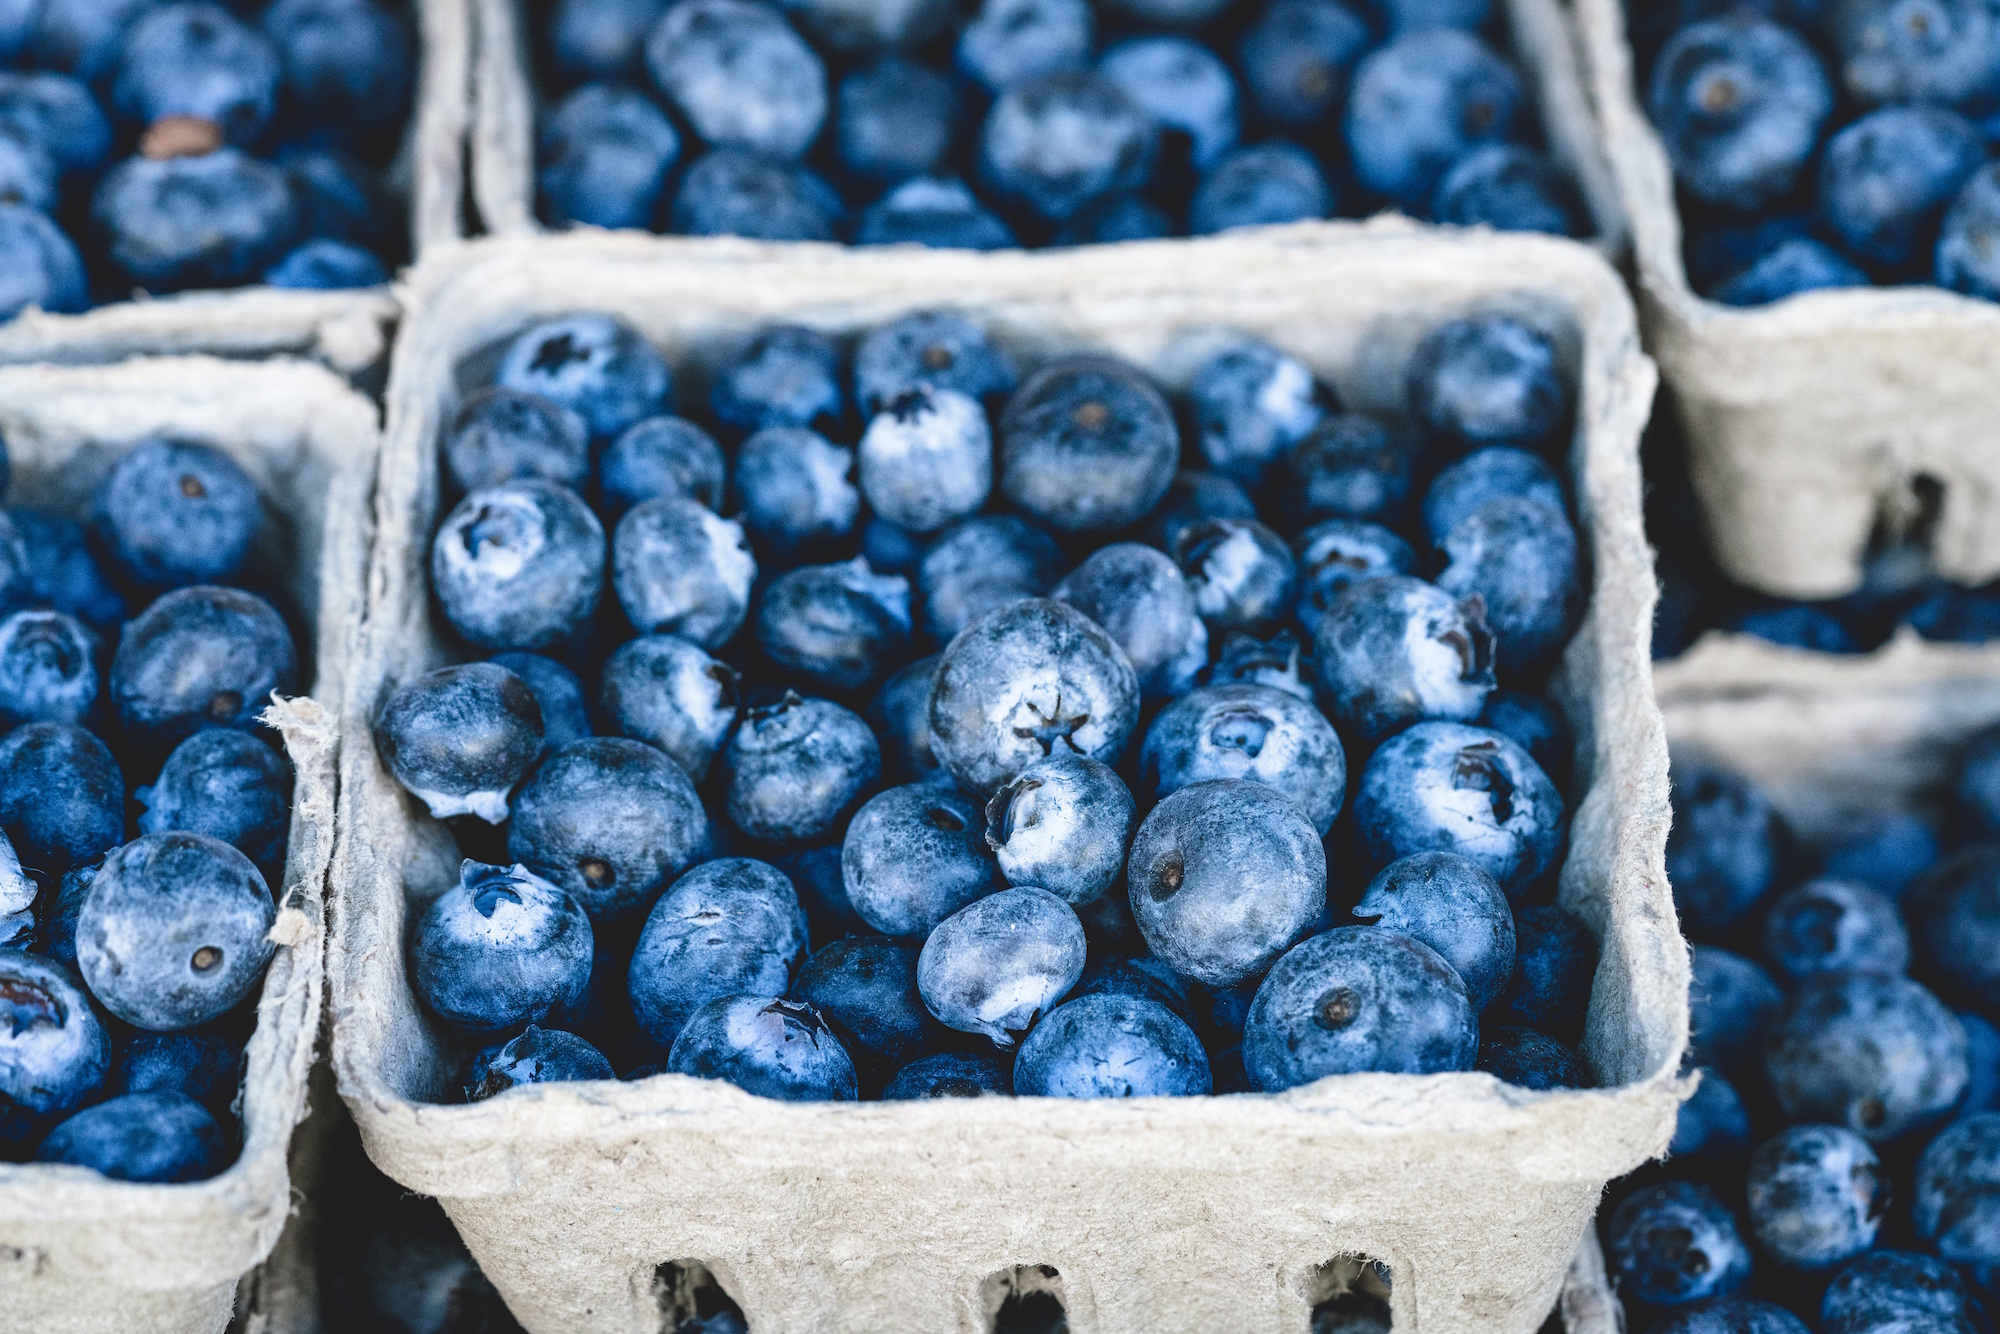 How much for those blueberries?